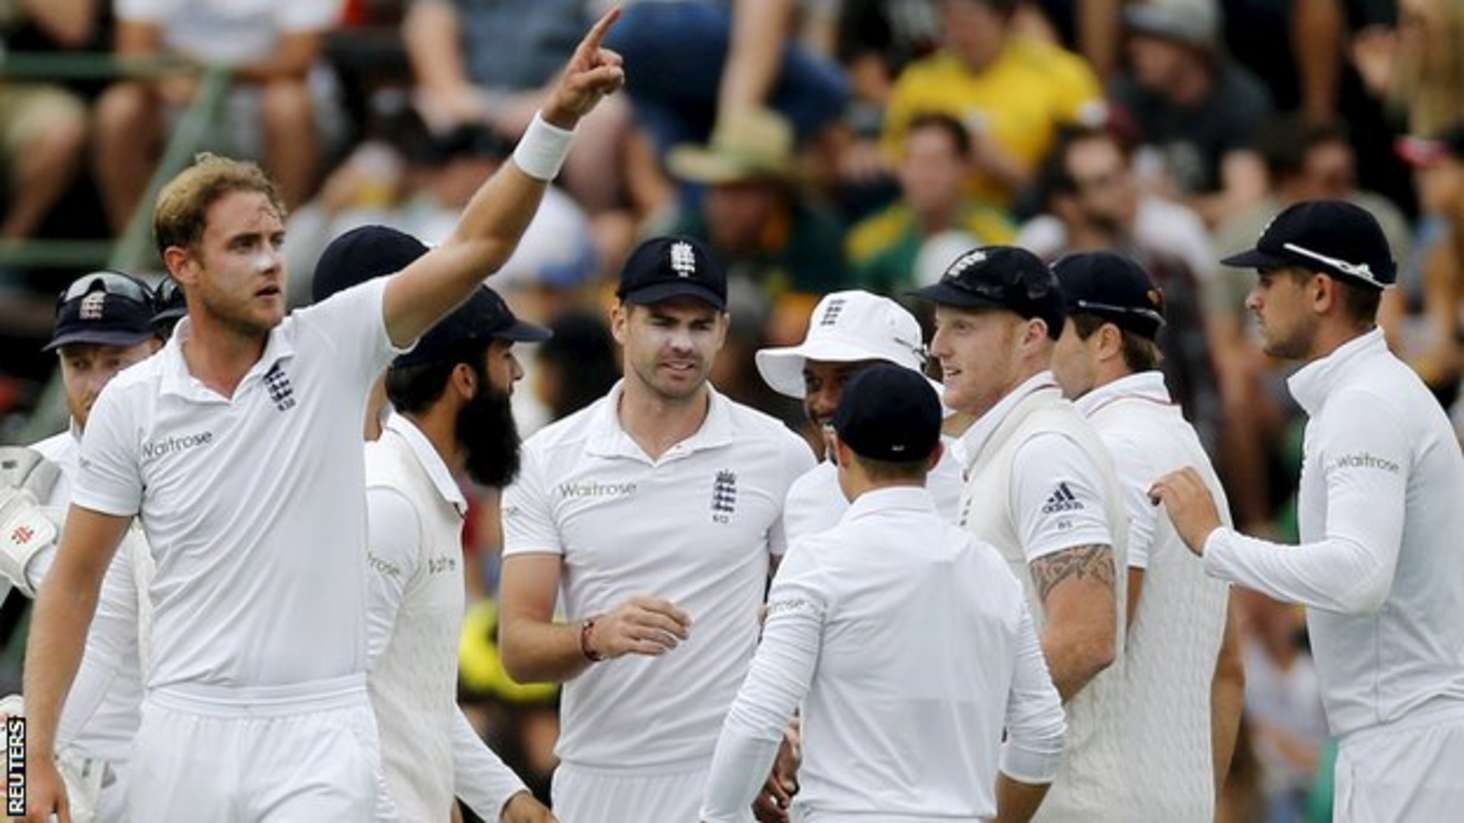 Stuart Broad England bowler will stand up and be counted